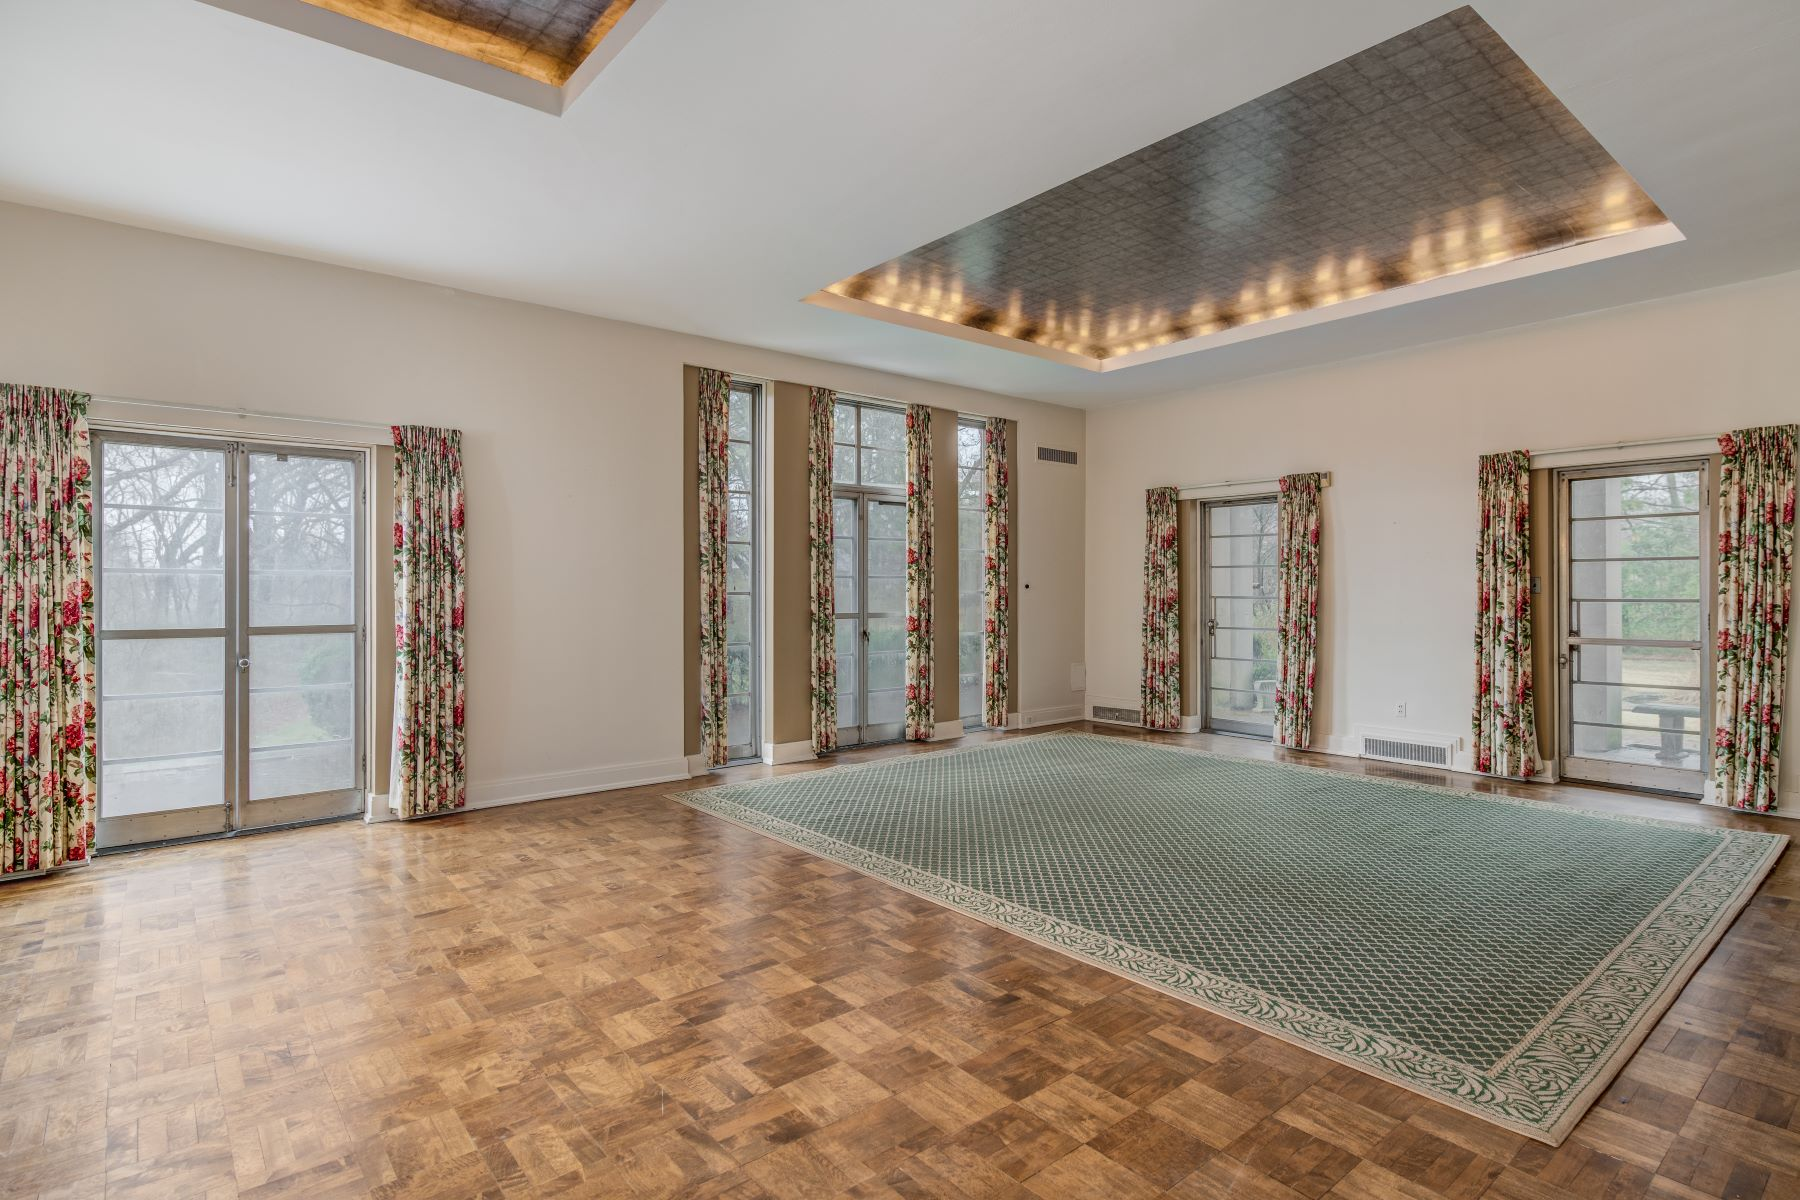 Additional photo for property listing at Huntleigh Estate Designed by Charles Eames 4 Deacon Drive Huntleigh, Missouri 63131 United States